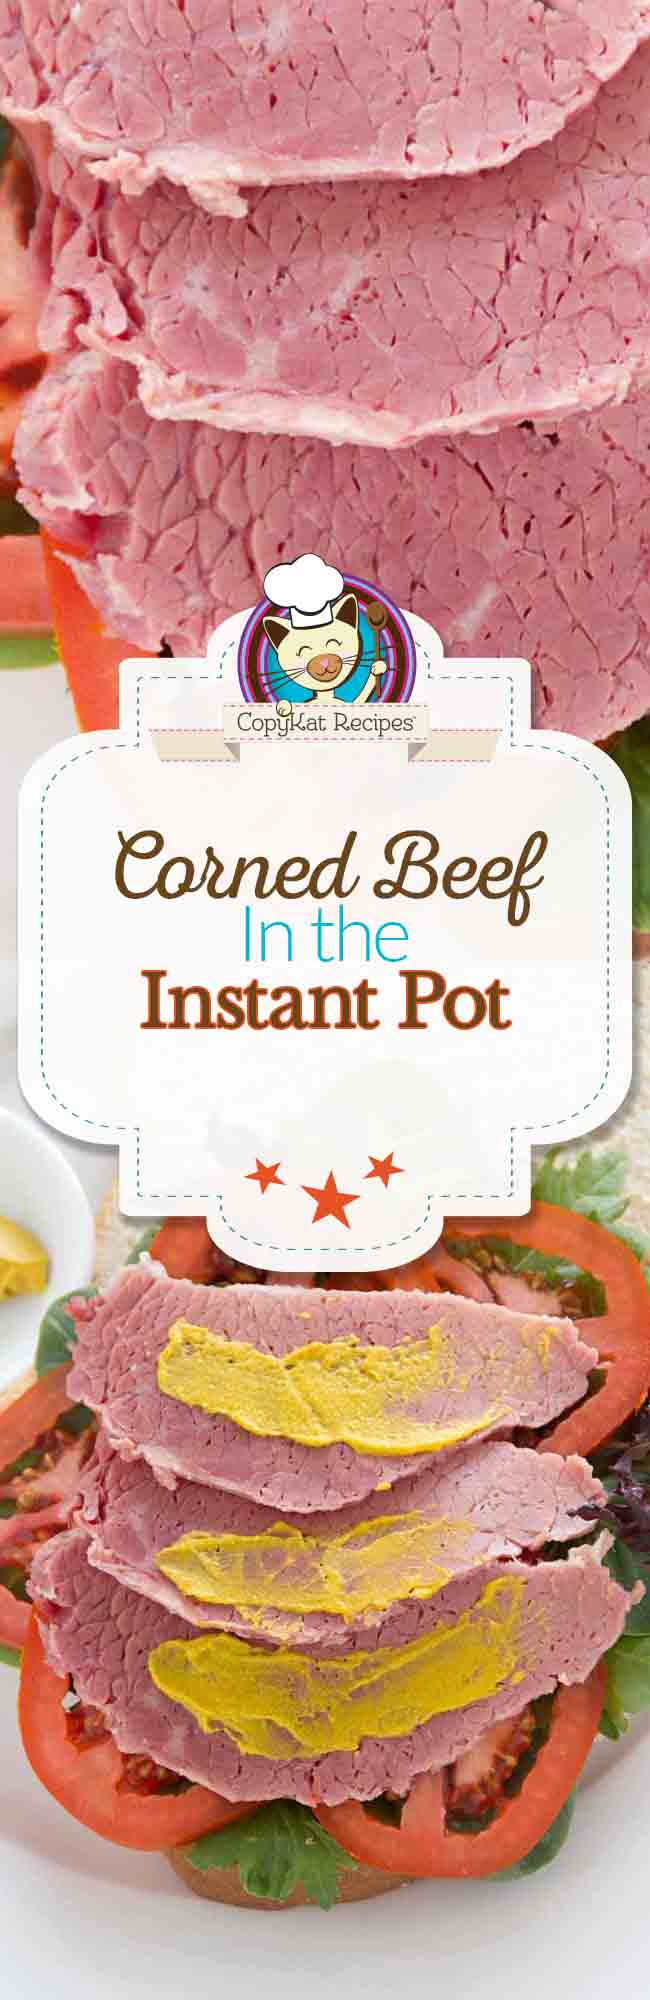 Make tender corned beef in an Instant Pot with this easy recipe.